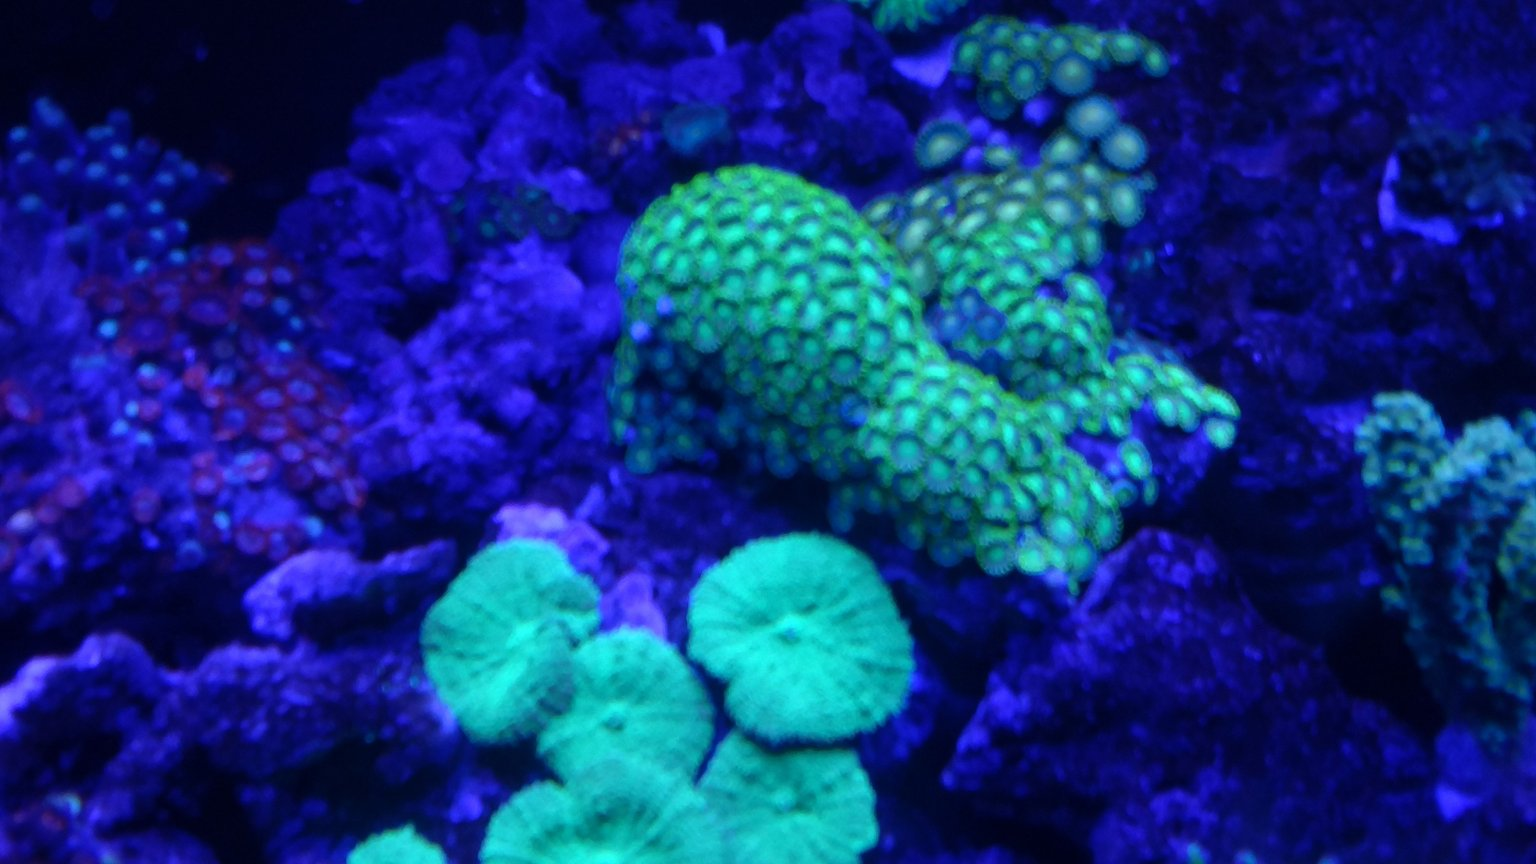 fish tank picture - Zoe's and shrooms, the green kind!